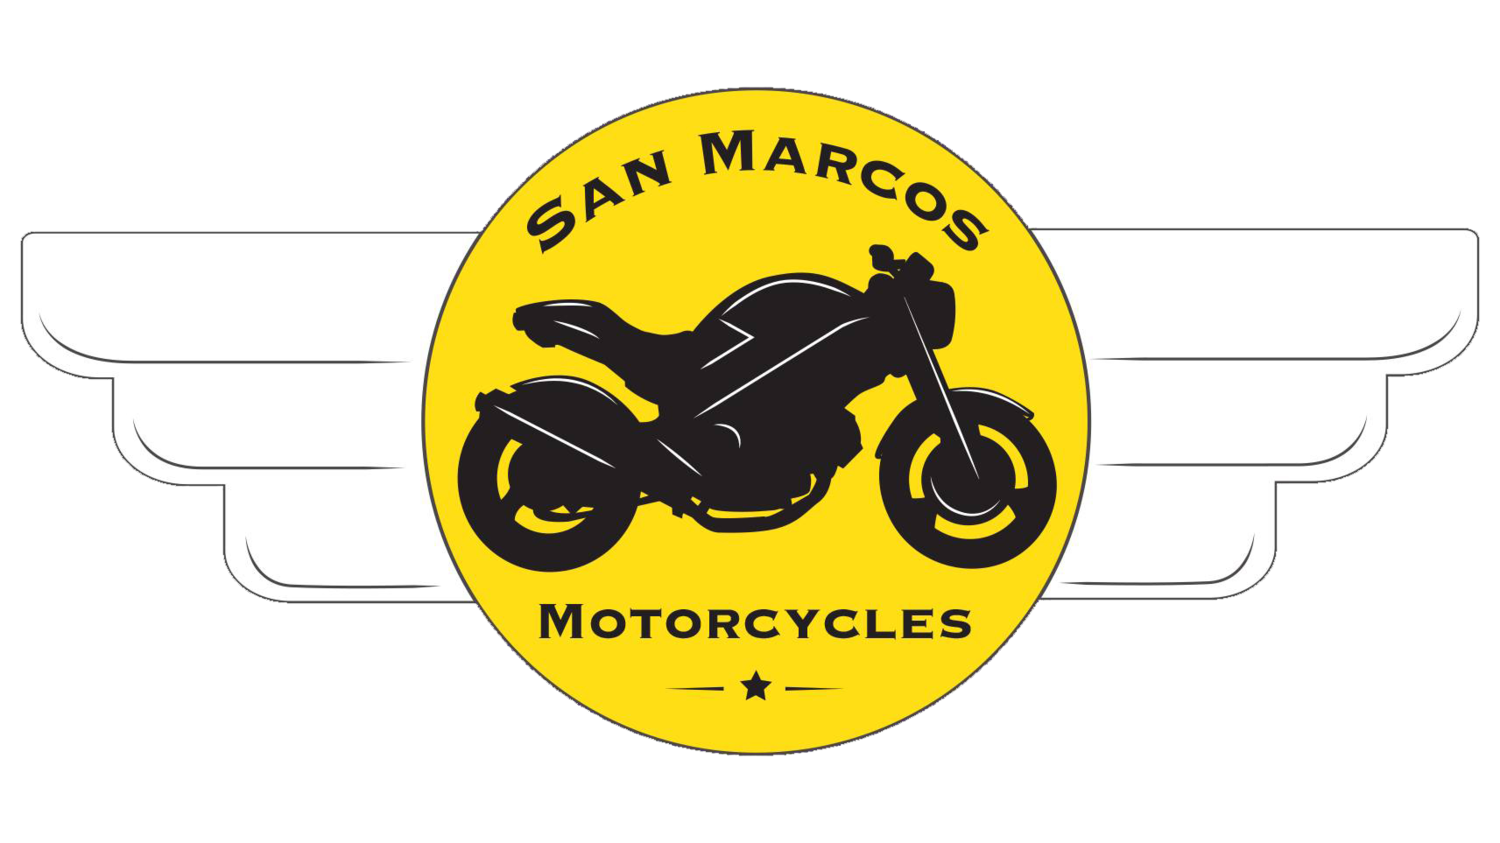 San Marcos Motorcycles